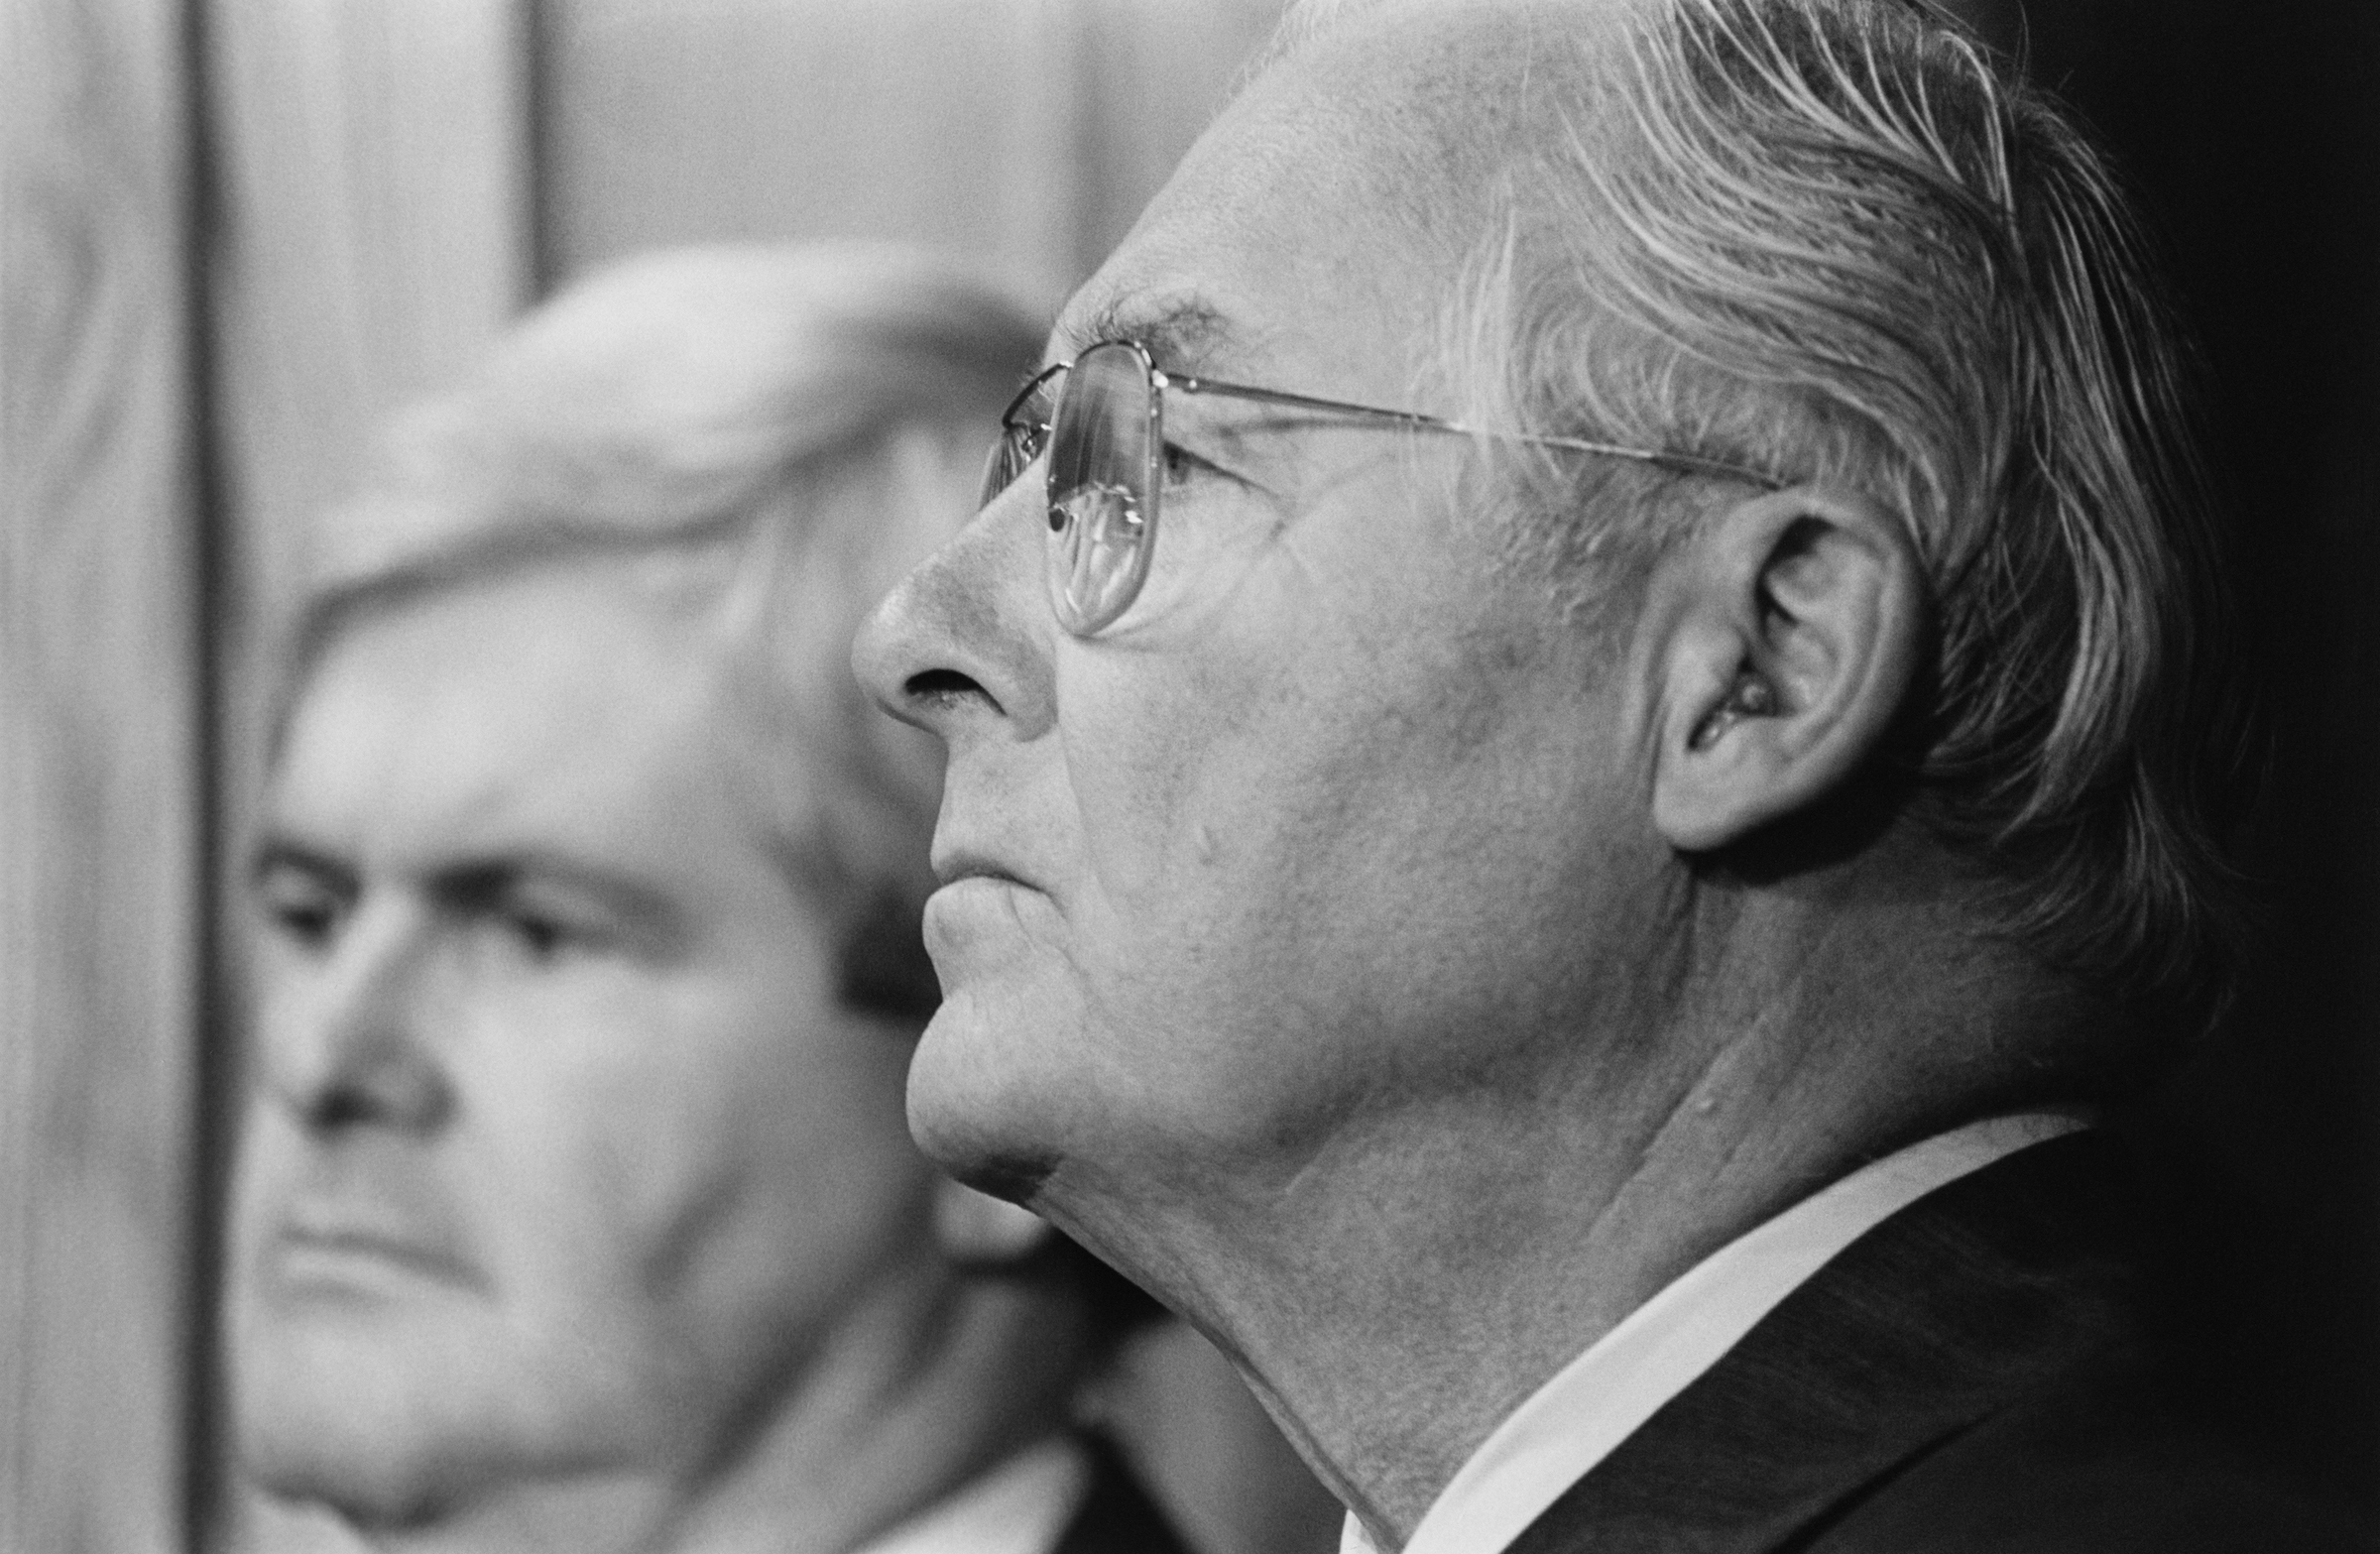 "Georgia Rep. <a class=""memberLink"" title=""Click to view member info in a new window"" href=""http://data.rollcall.com/members/659?rel=memberLink"" target=""_blank"">Newt Gingrich</a> and Michel at a press conference in October 1993 (Maureen Keating/CQ Roll Call Archive Photo)"